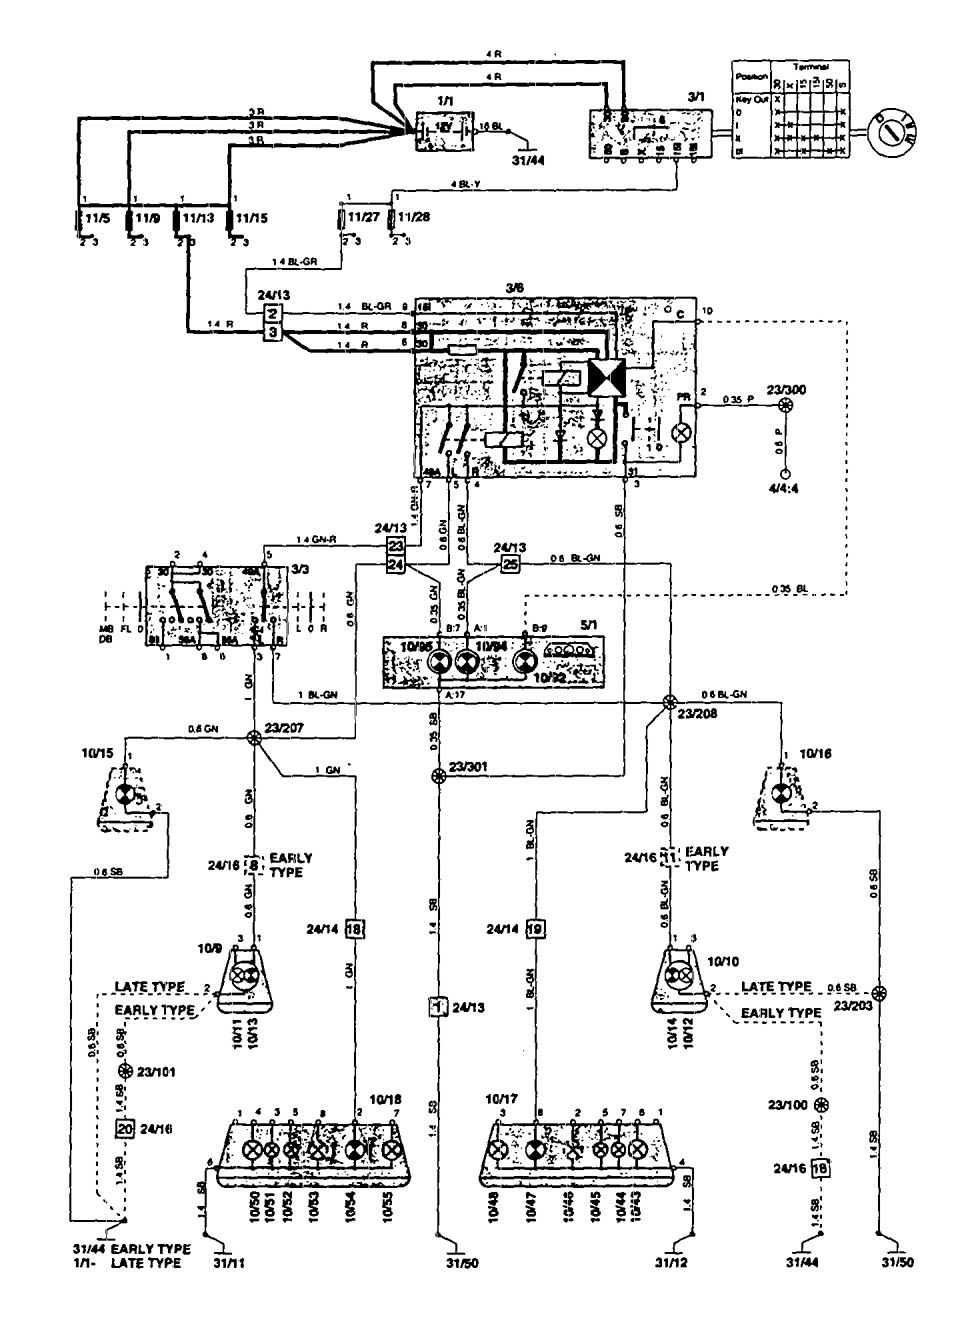 850 Volvo Fog Lamp Wiring Diagram - Wiring Diagram Direct table-produce -  table-produce.siciliabeb.it | Volvo 850 Fog Light Wiring Diagram |  | table-produce.siciliabeb.it